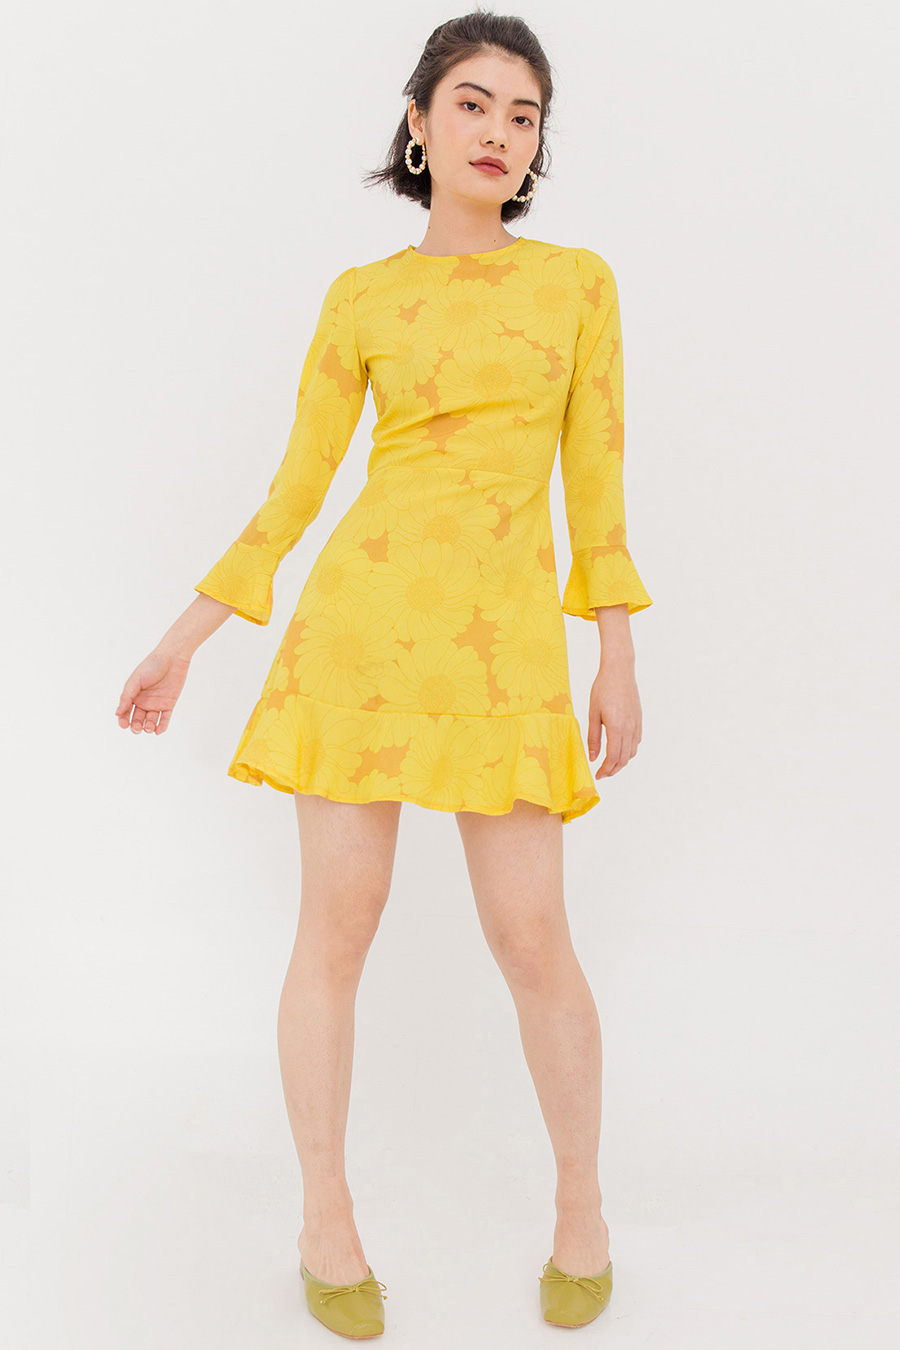 *SALE* GOLDIE FLORAL RUFFLE DRESS - CANARY